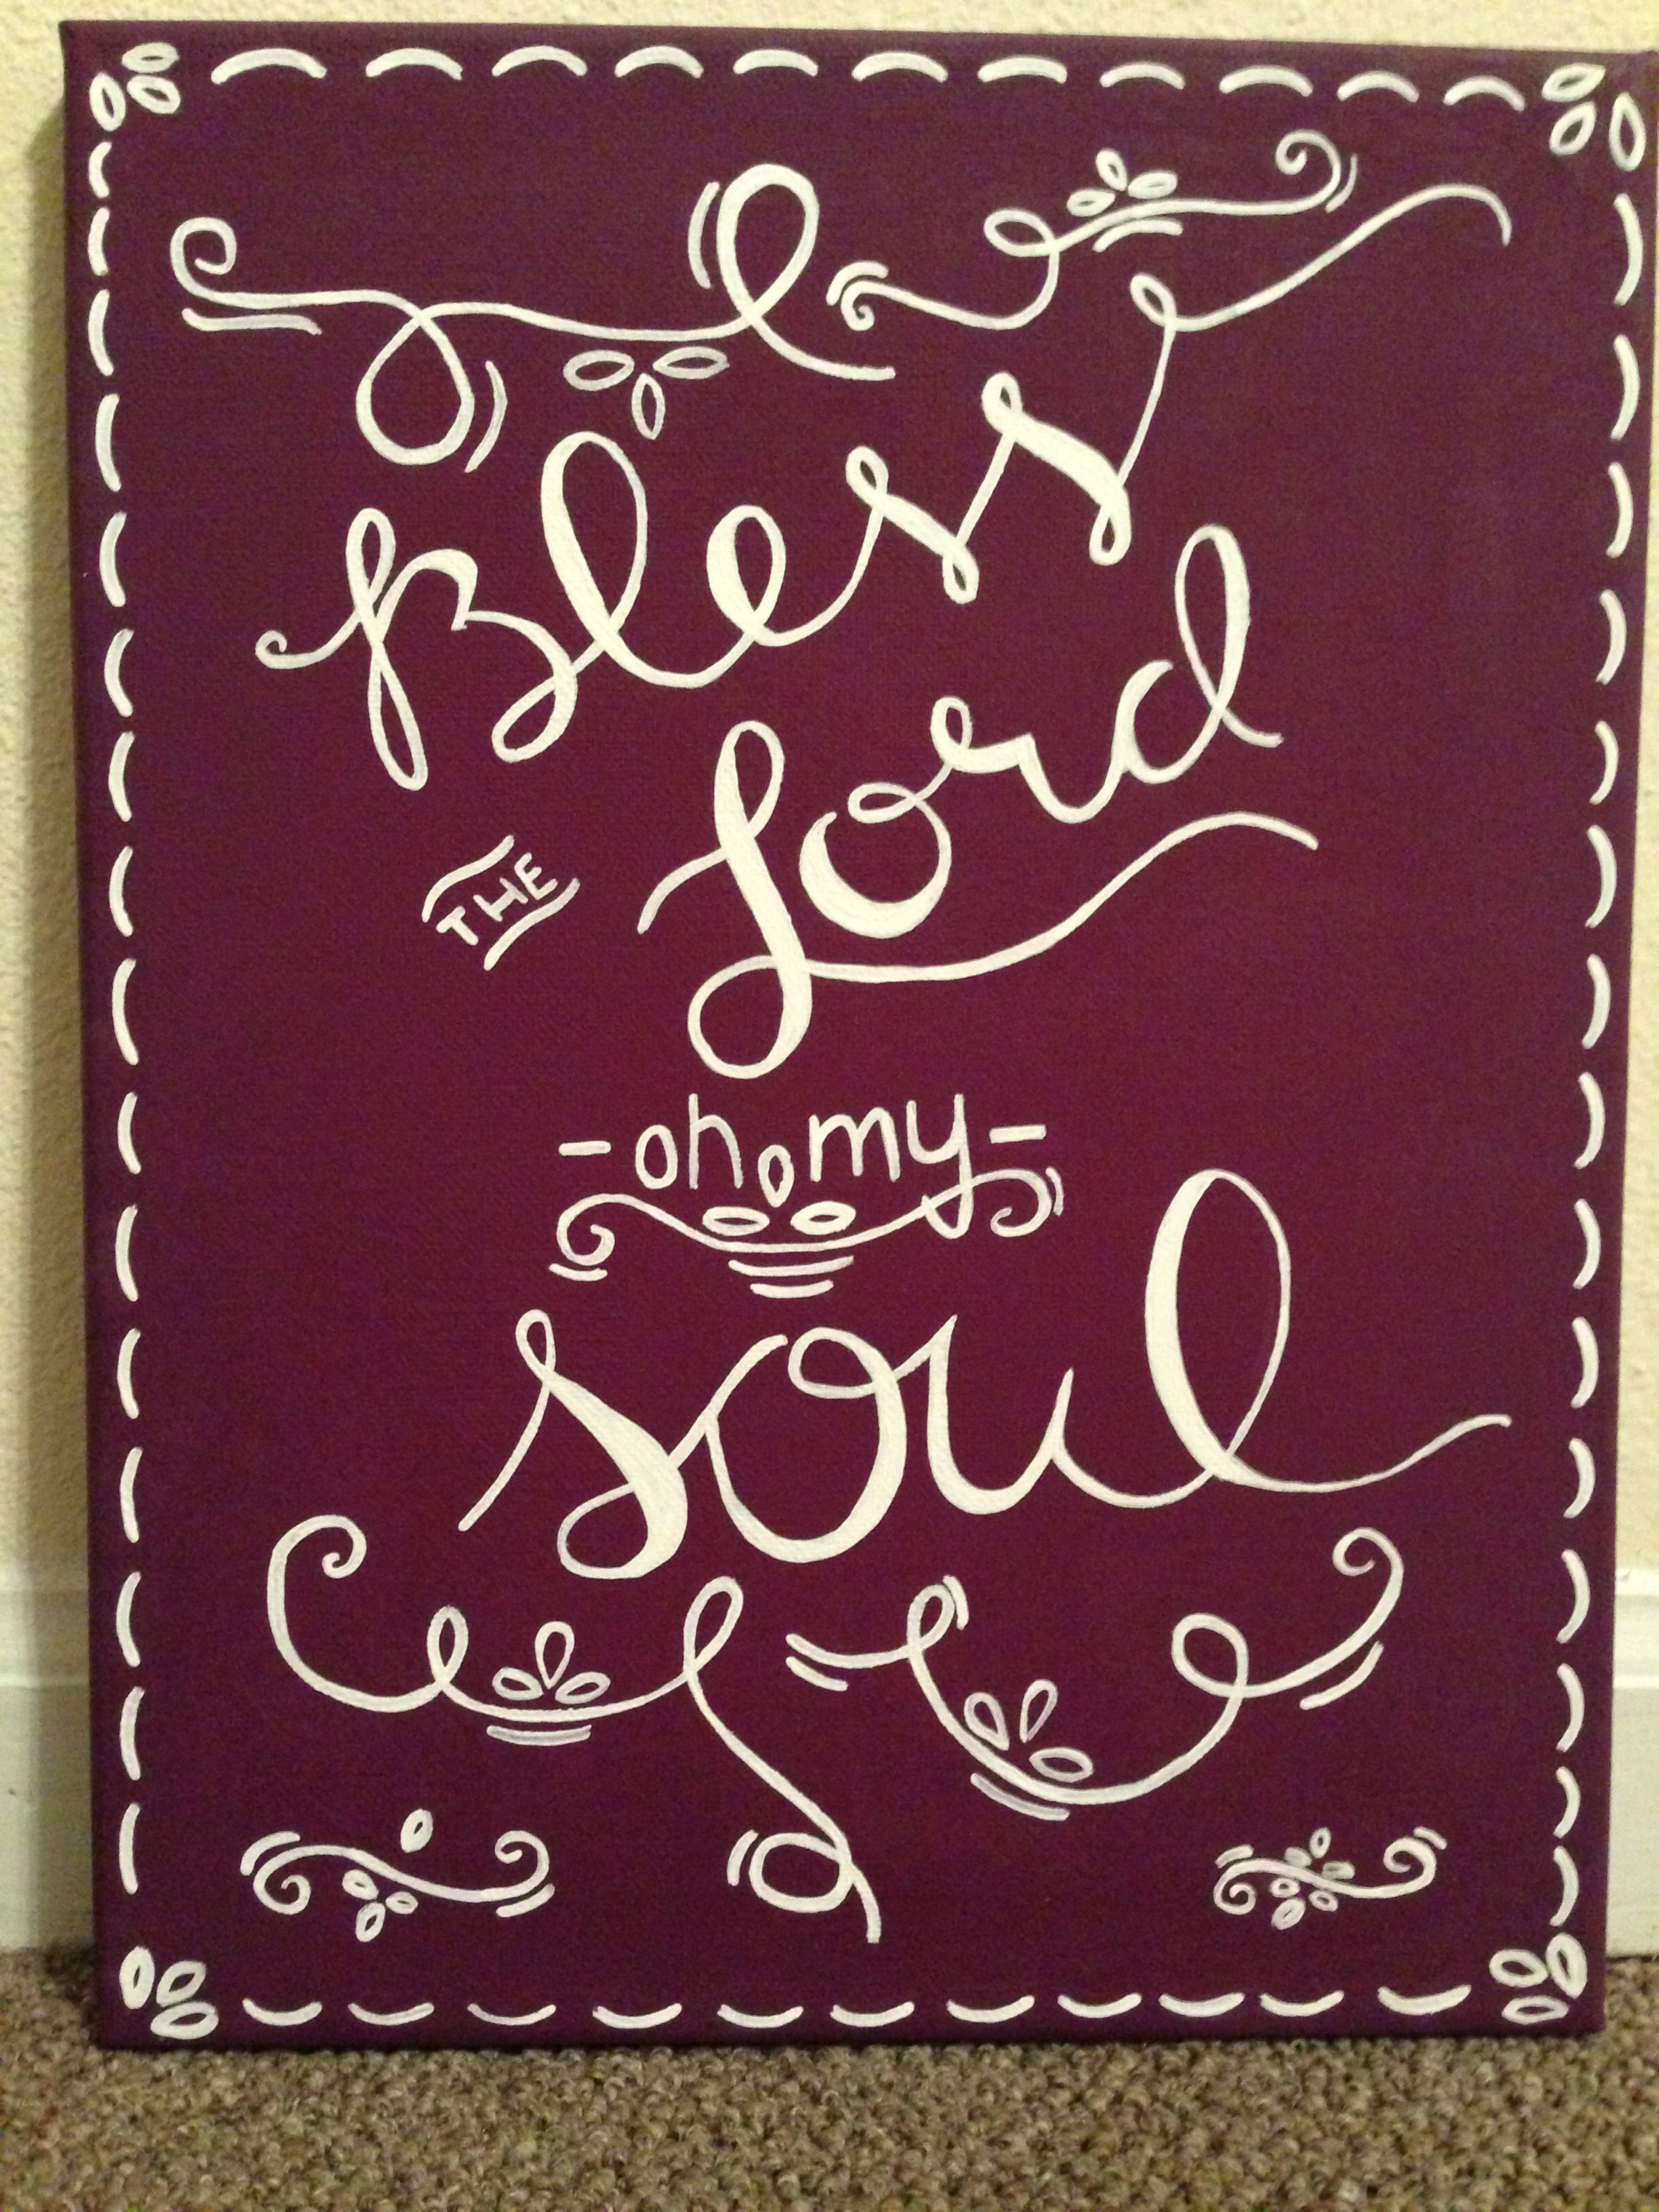 Bless The Lord oh my soul canvas  10,000 Reasons Lyrics | Craft